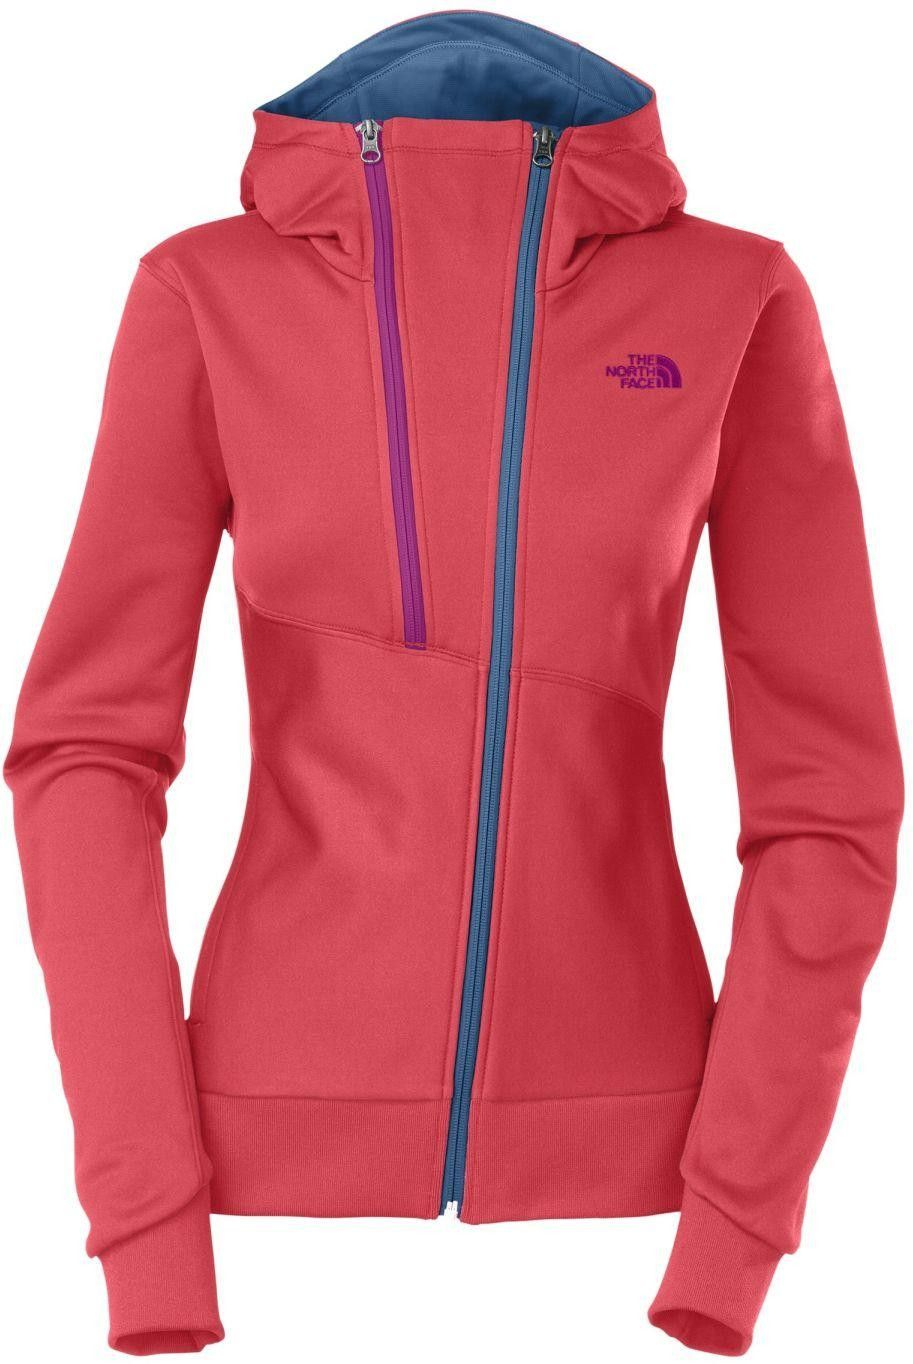 224635b45 The North Face Thatch Hoodie - Women's Snowcone Red // This cute and ...